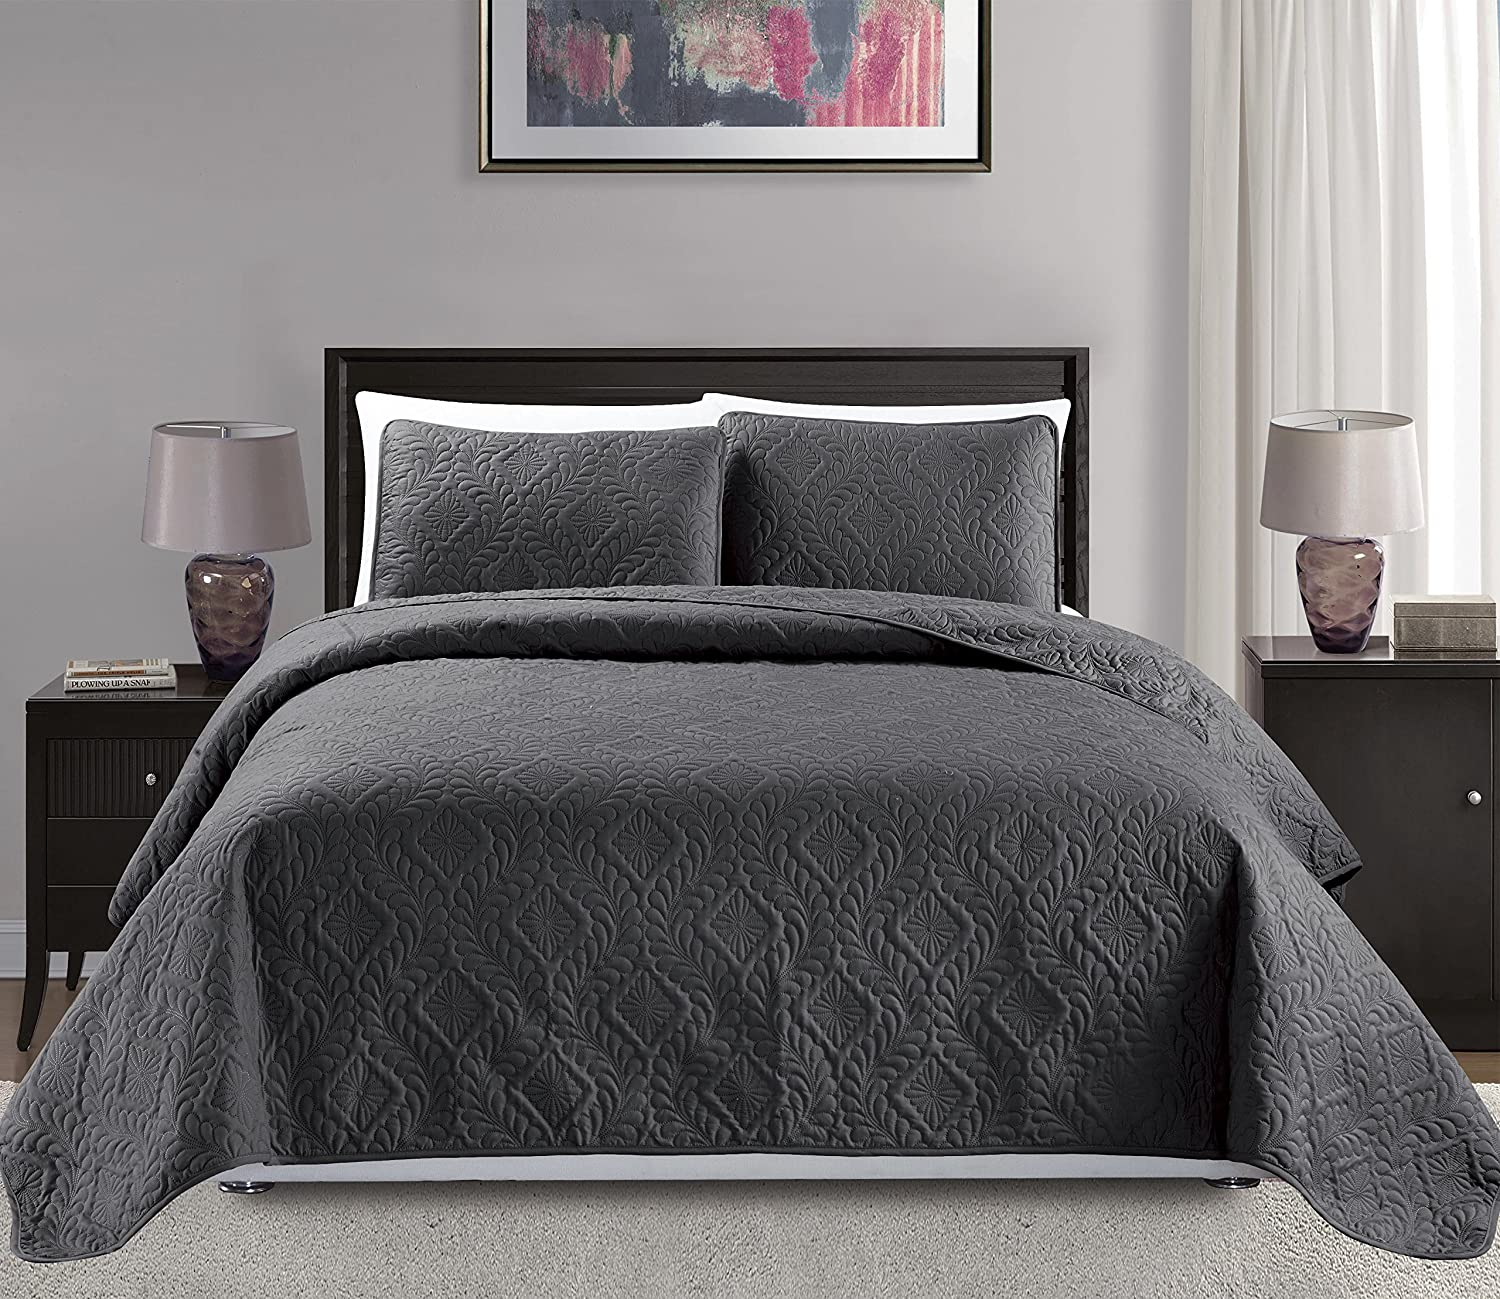 Mk Collection Diamond Bedspread Bed-Cover Solid Over Si Max 51% Nippon regular agency OFF Embossed